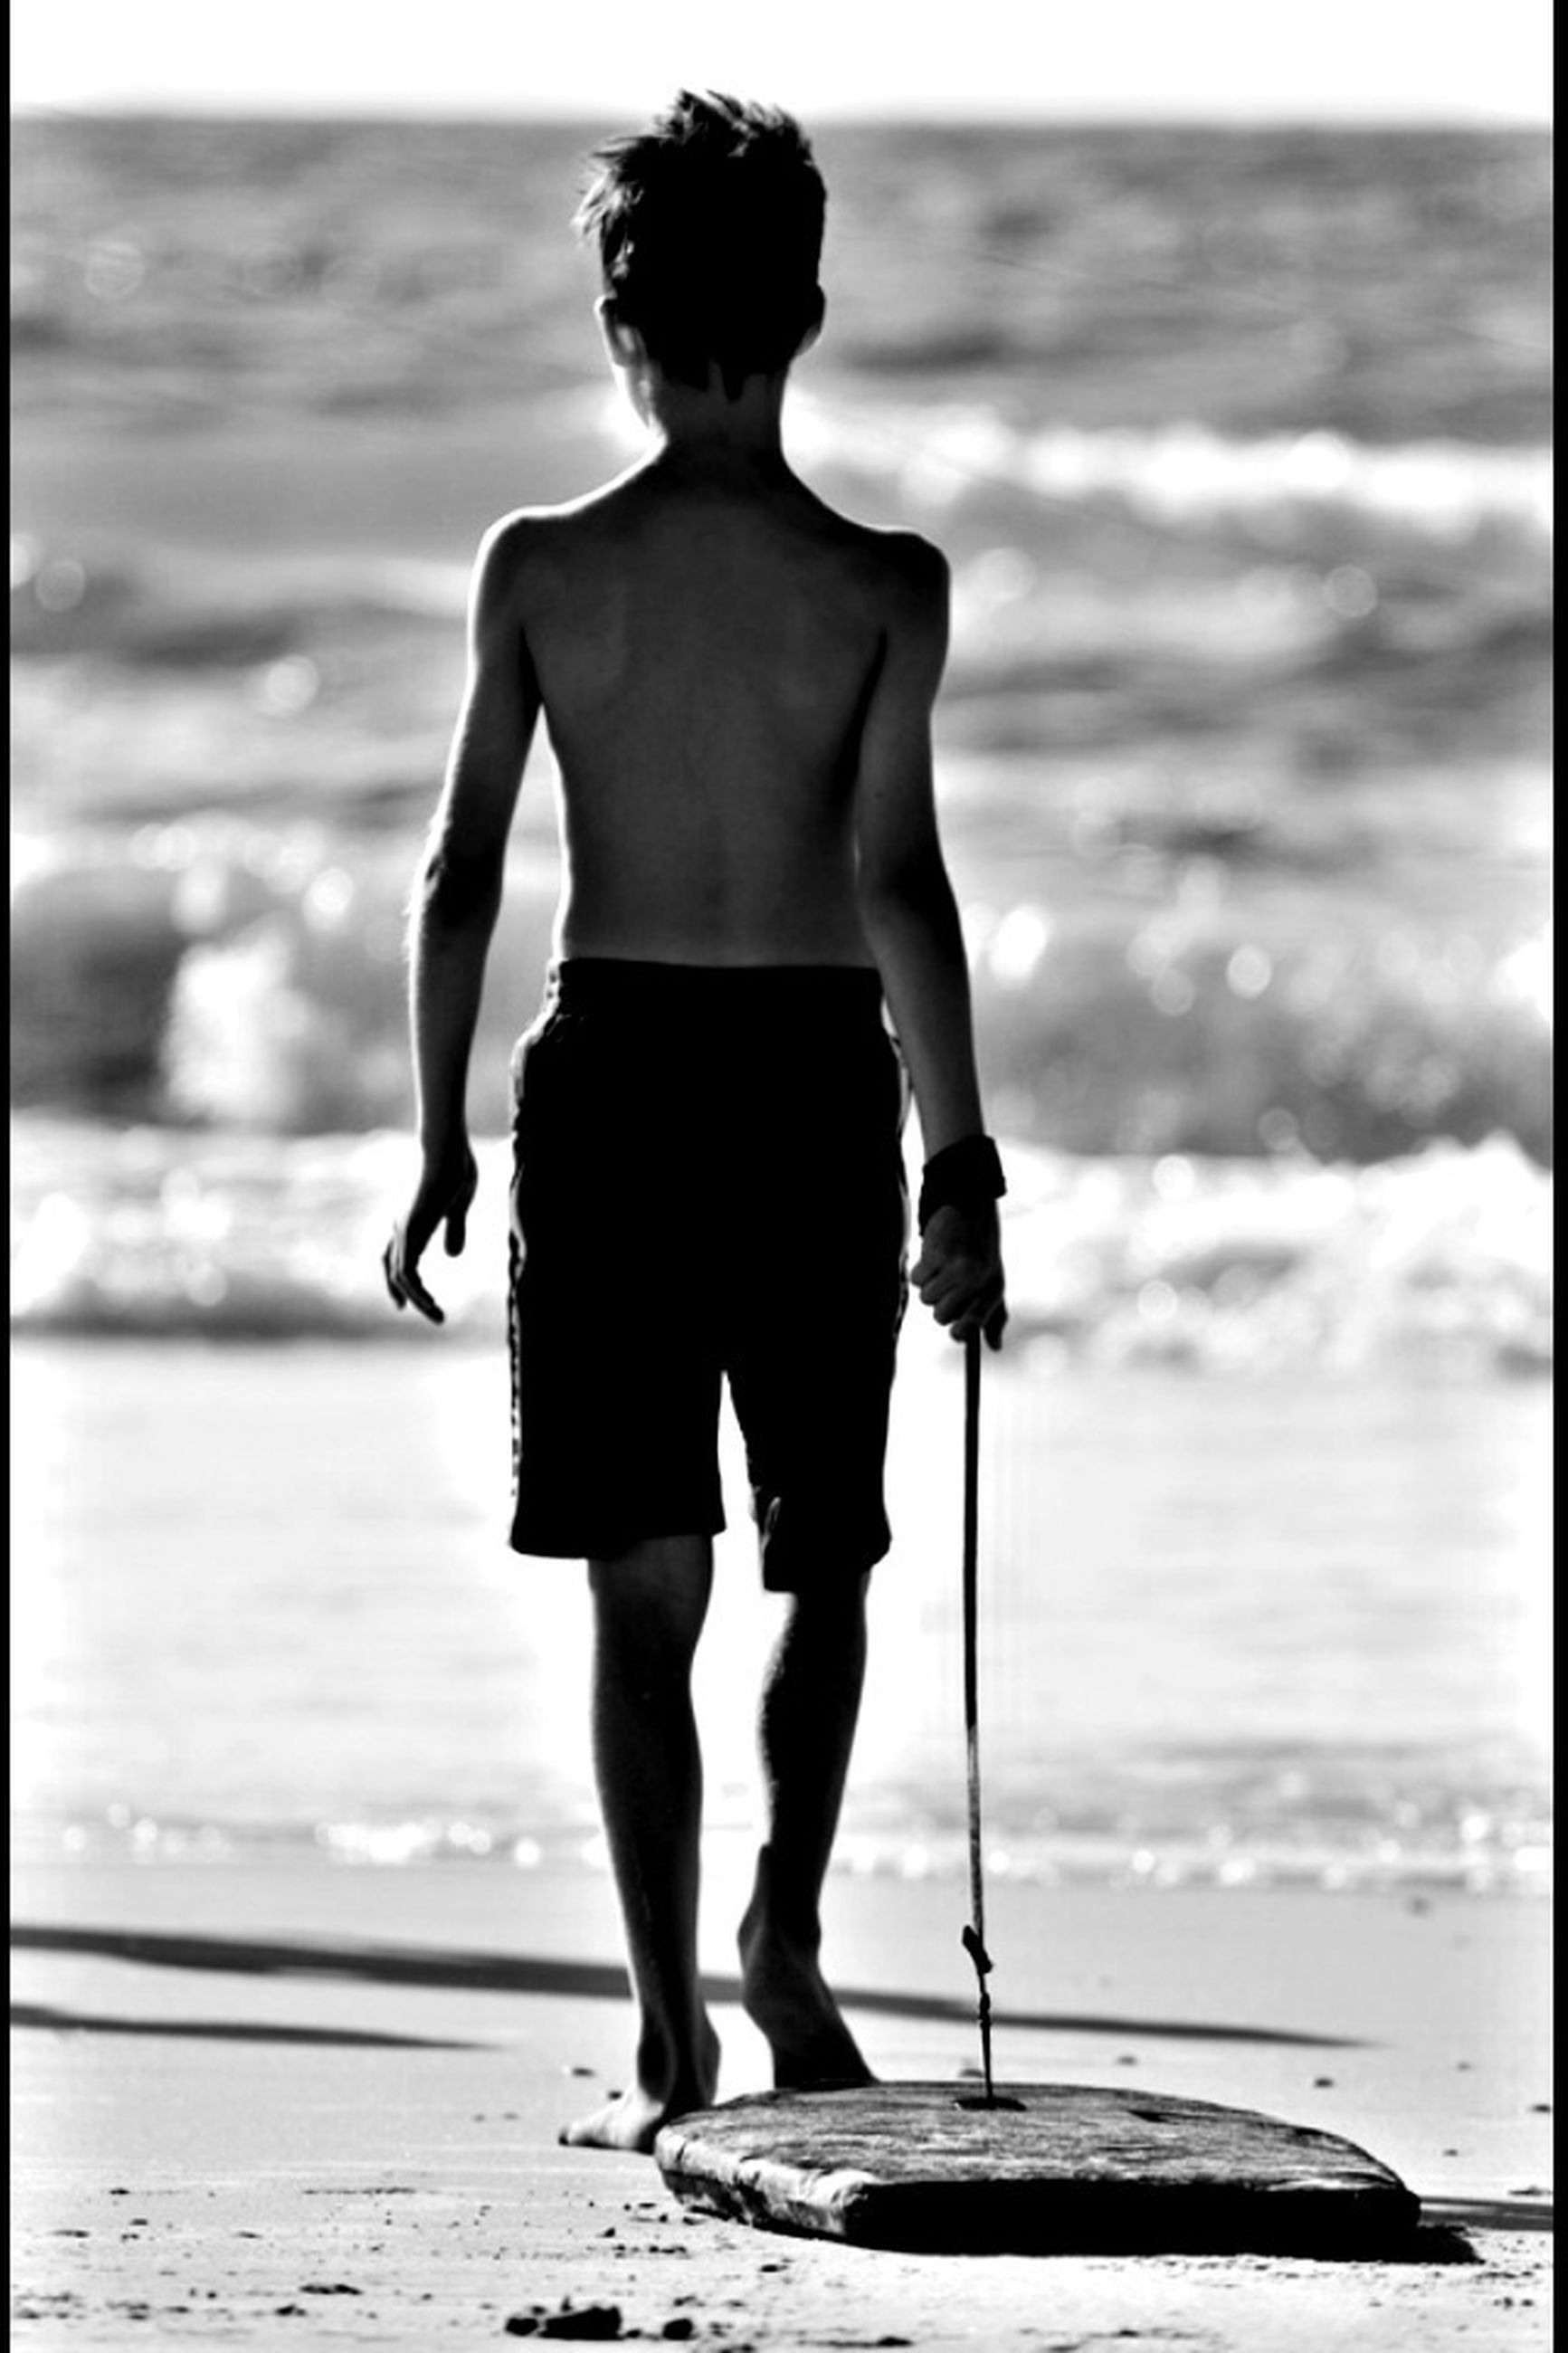 sea, beach, water, shore, horizon over water, standing, full length, rear view, sand, lifestyles, leisure activity, person, vacations, wave, transfer print, outdoors, day, focus on foreground